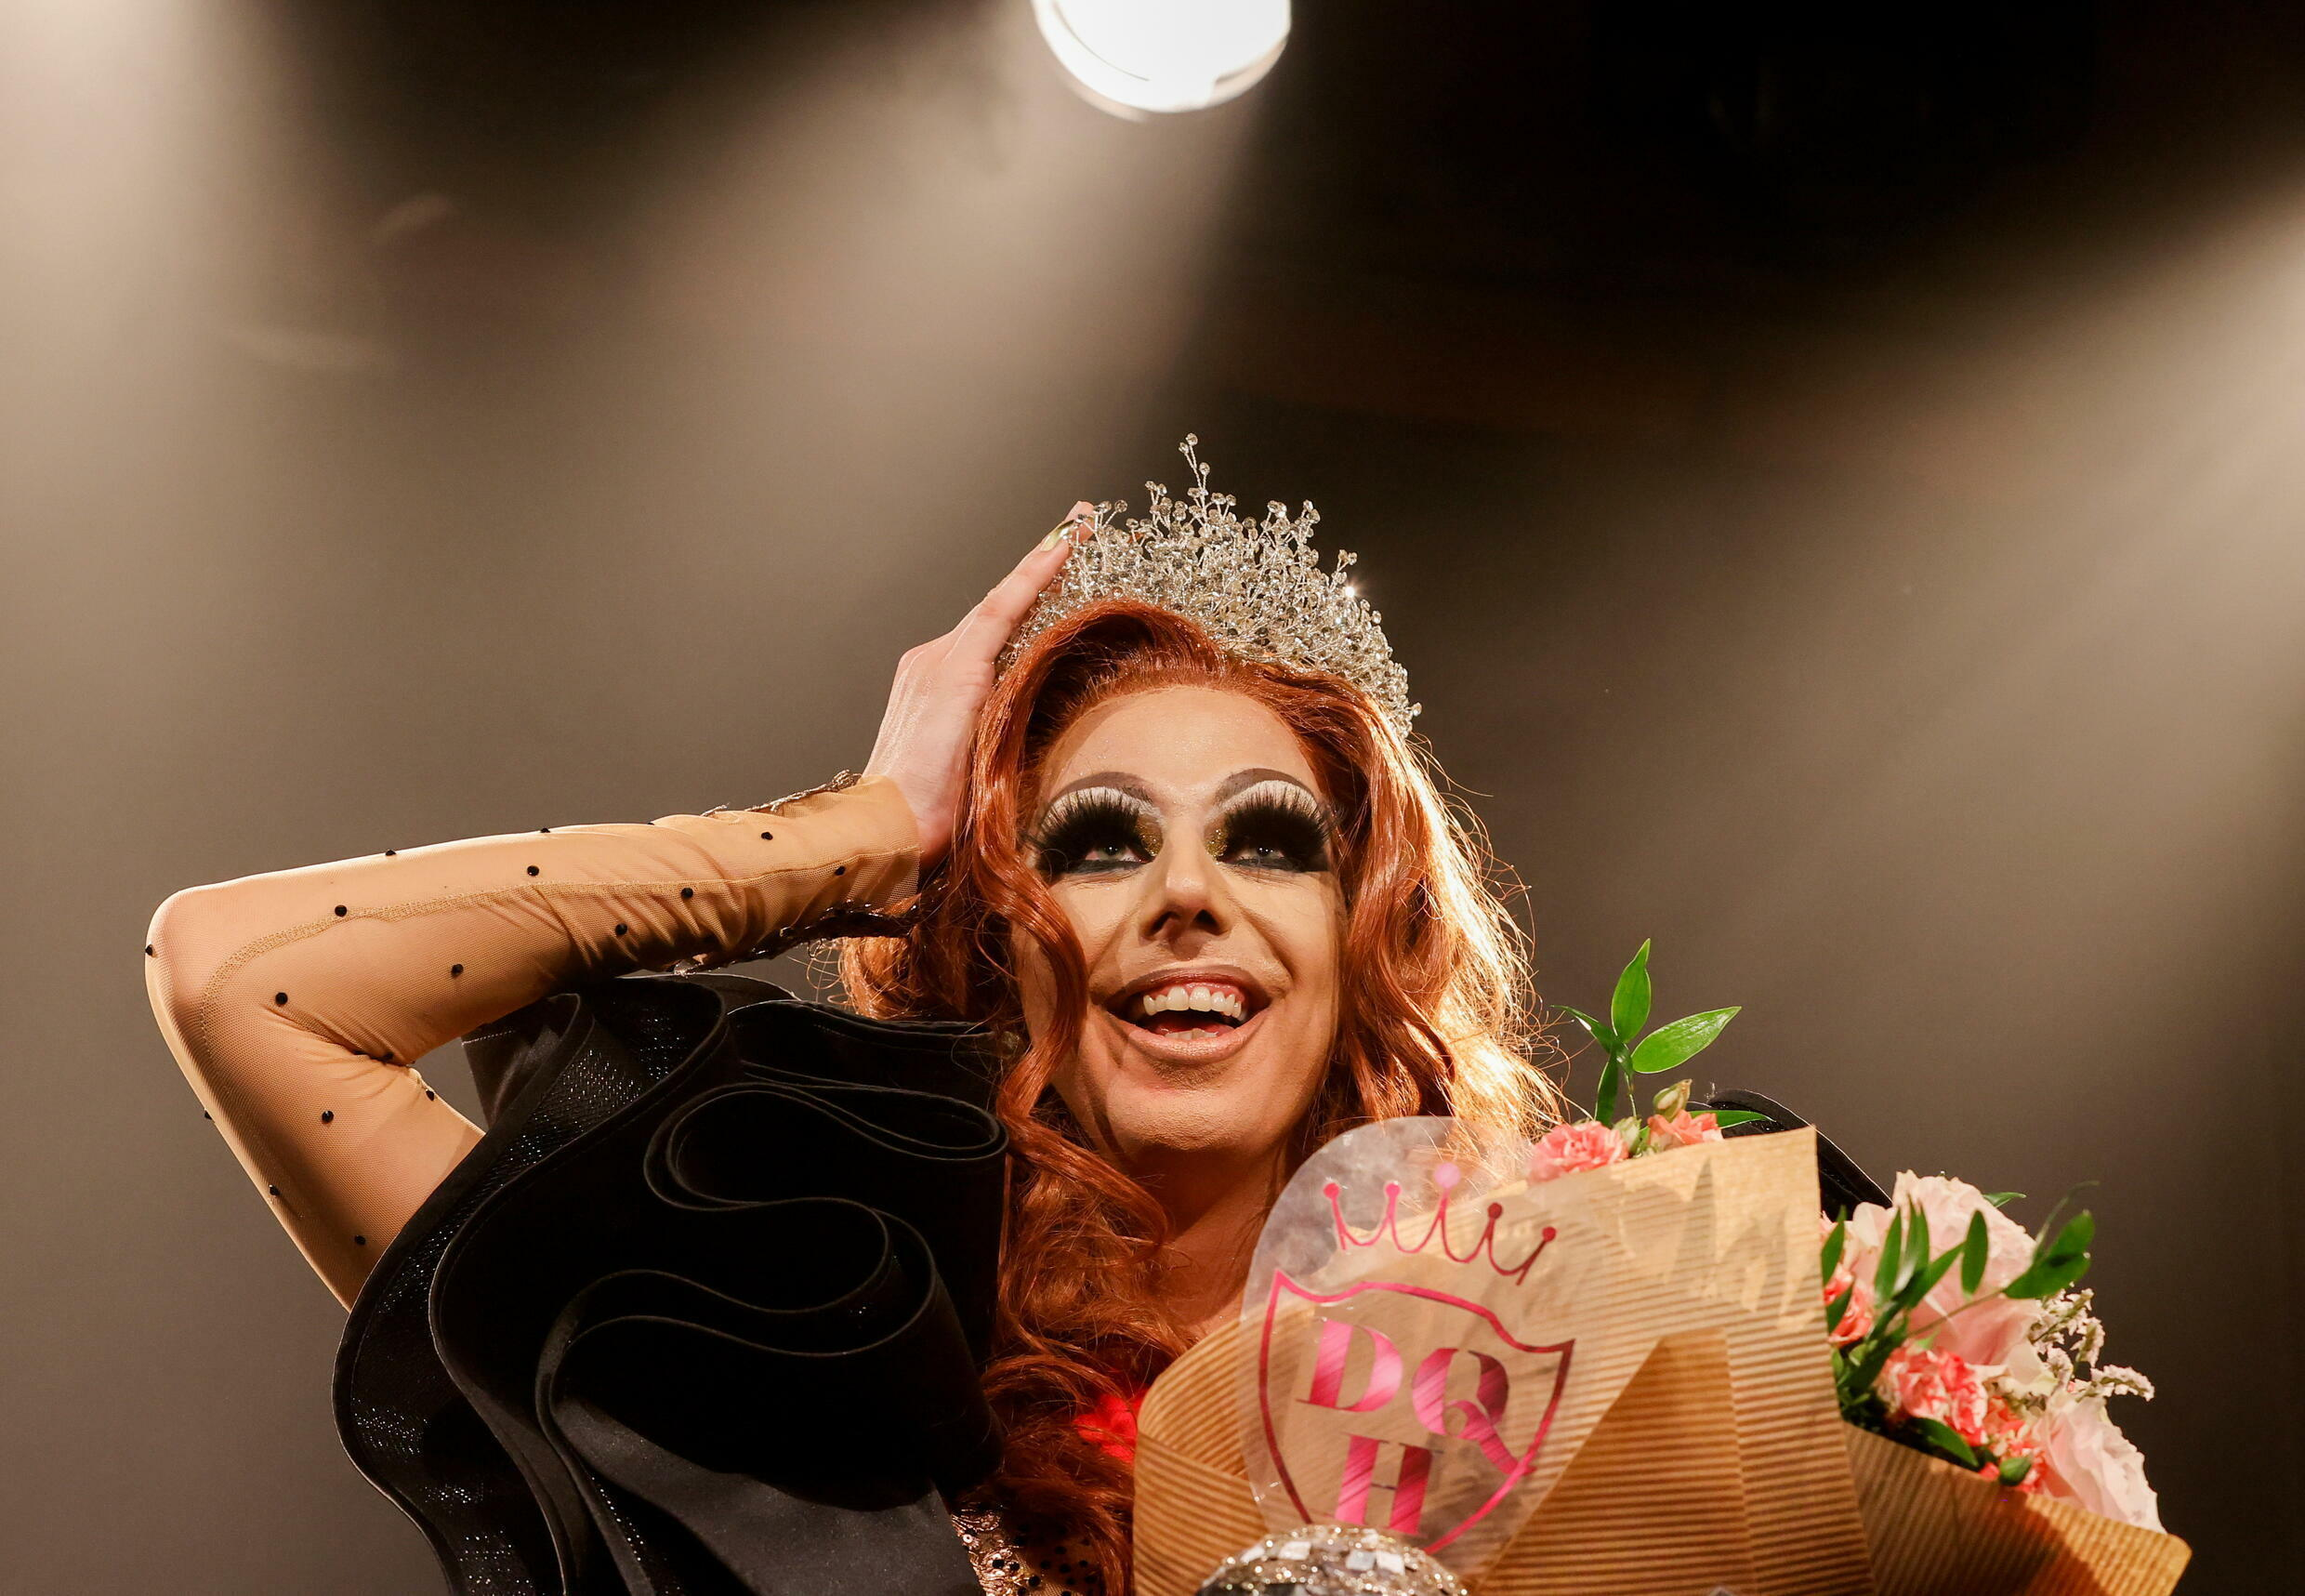 _3_HUNGARY-LGBT-DRAGQUEEN-CONTEST